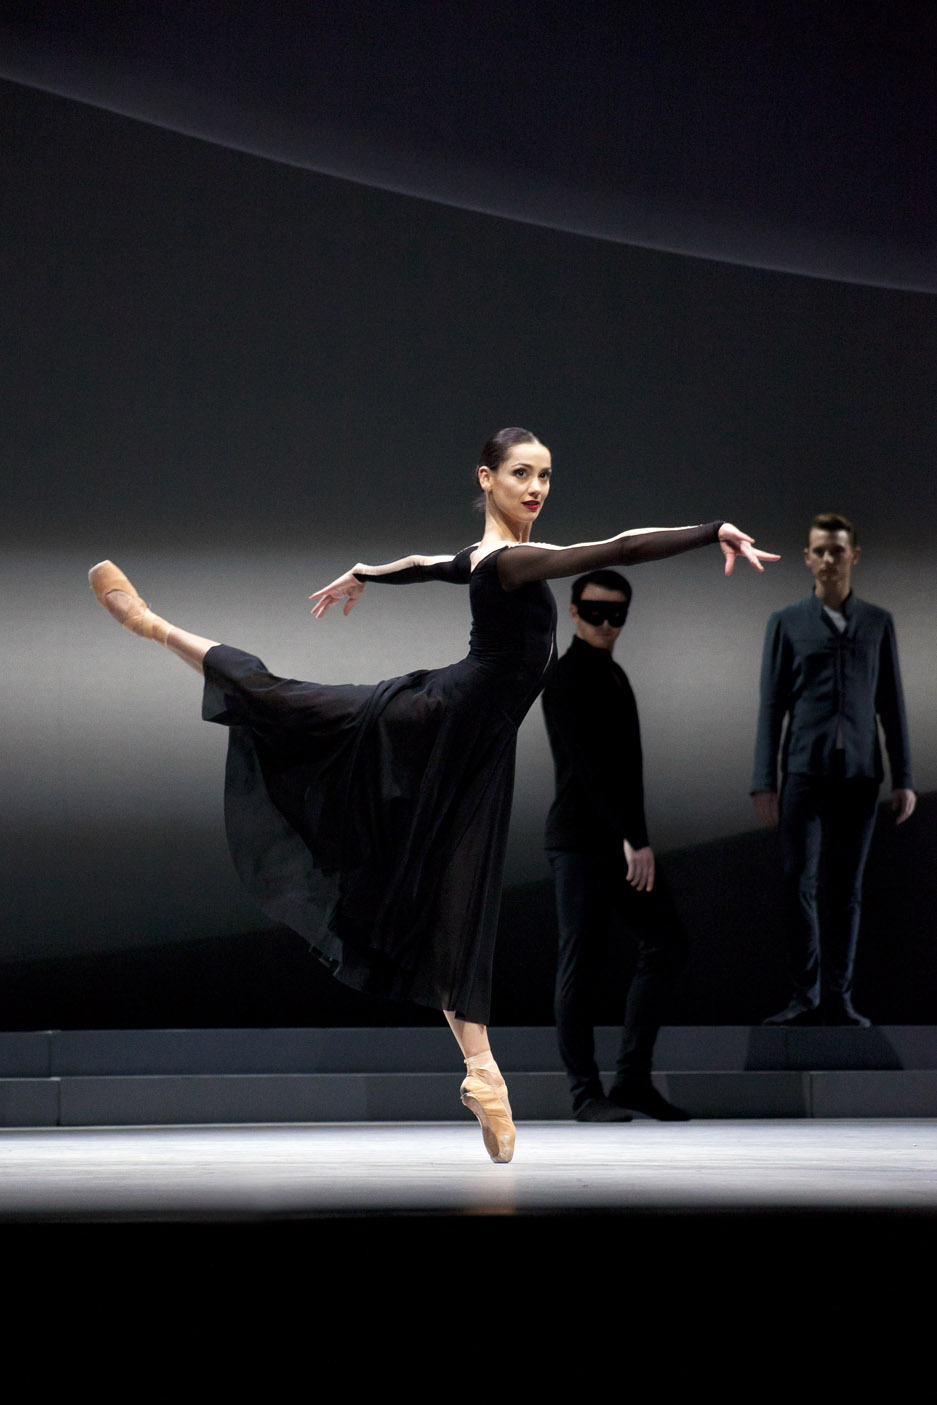 Sophie Martin as Odile in David Dawson's Swan Lake